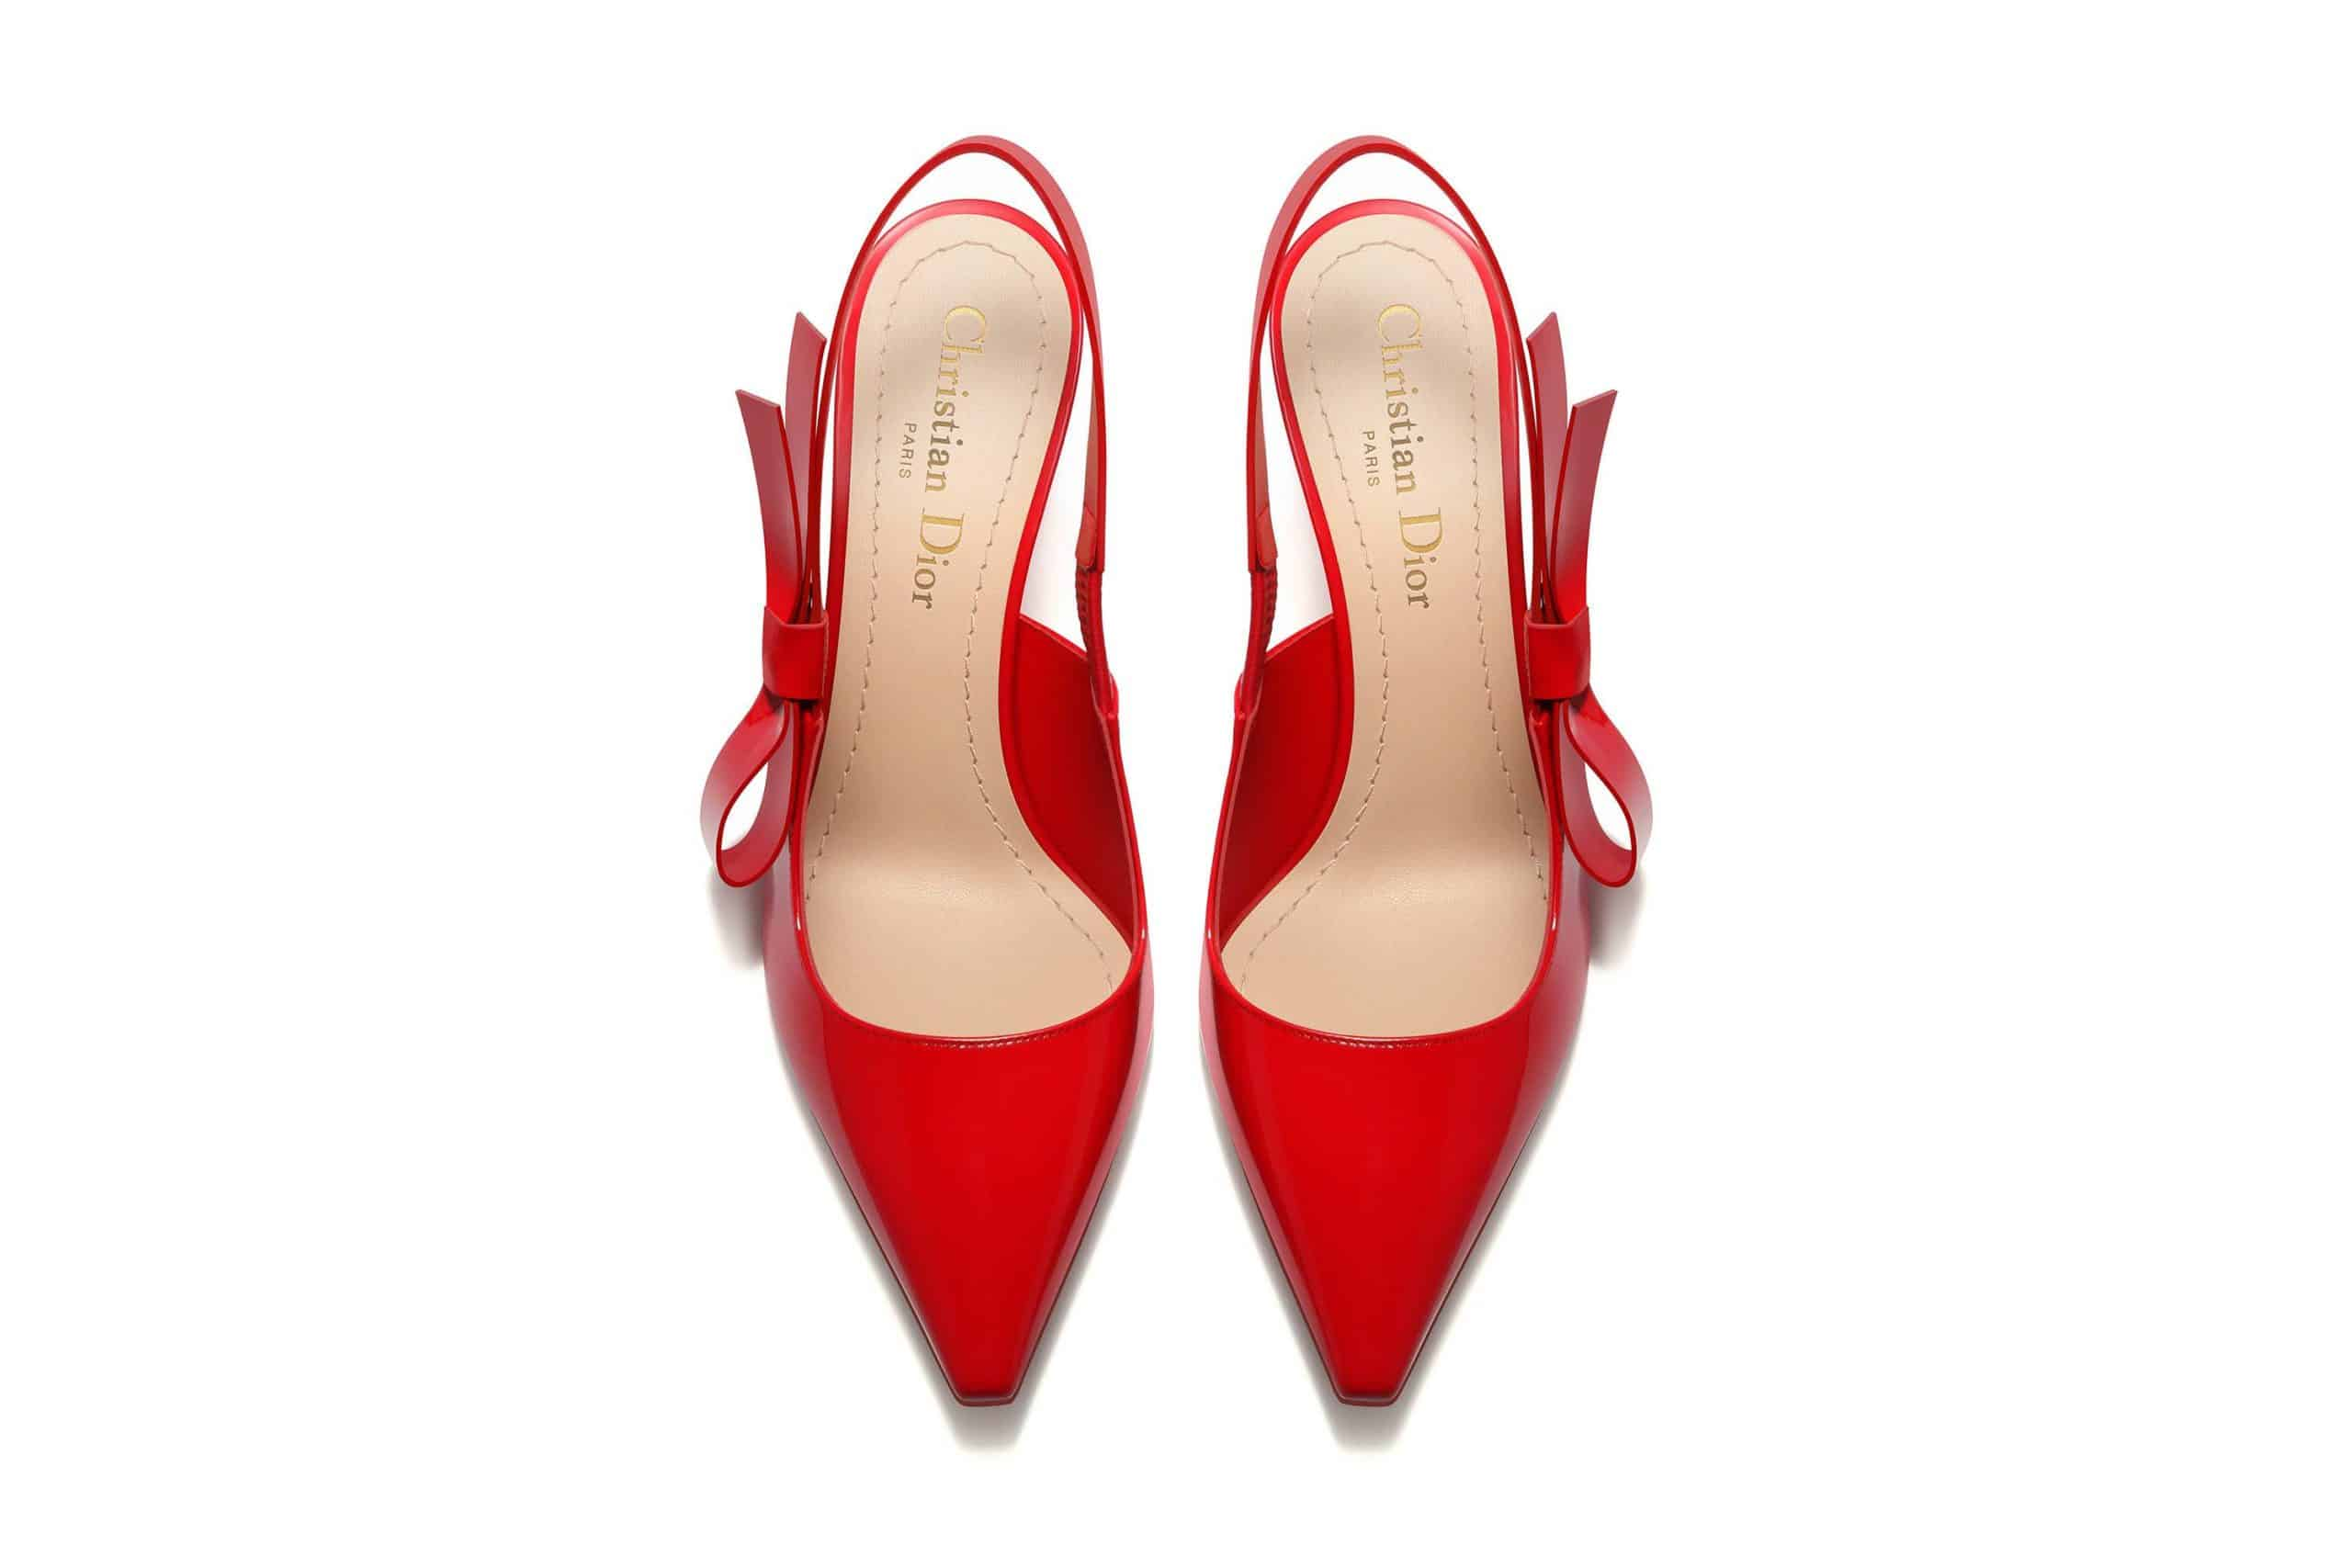 Red-Patent-Calfskin-Leather Branded Shoes for Women-20 Best Designer Shoes to Buy in 2019